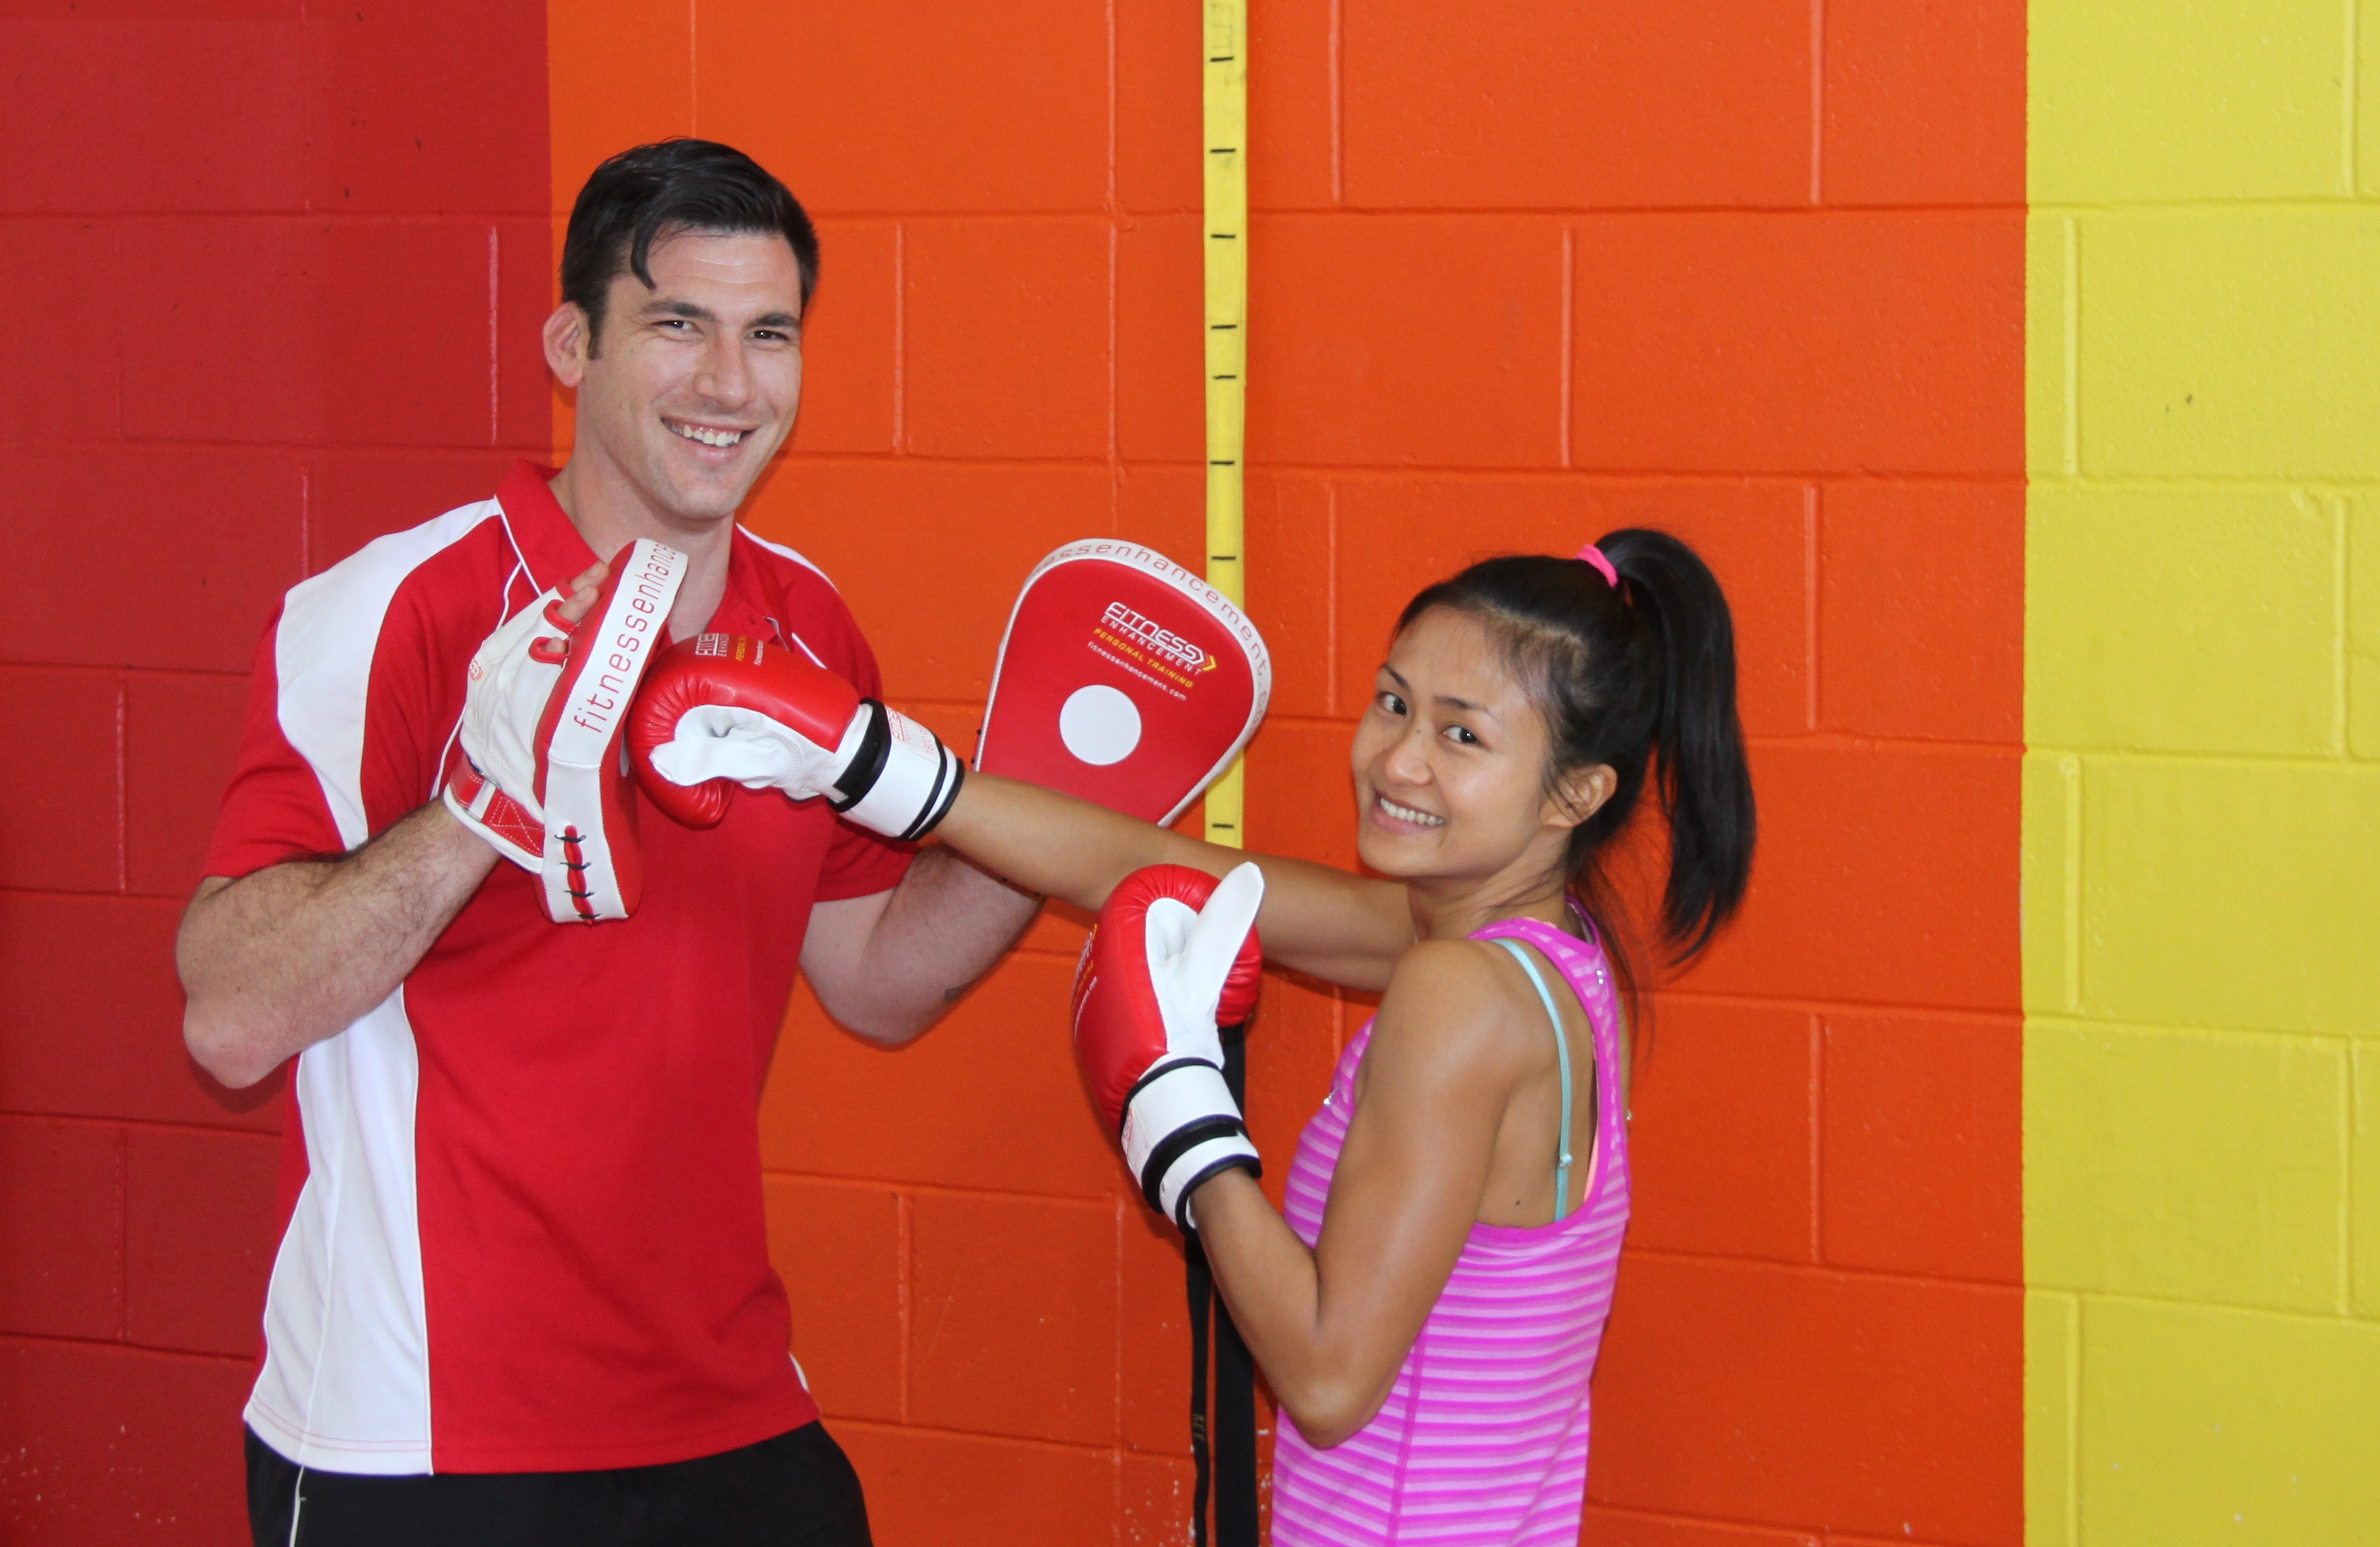 Nick Personal Trainer Boxing